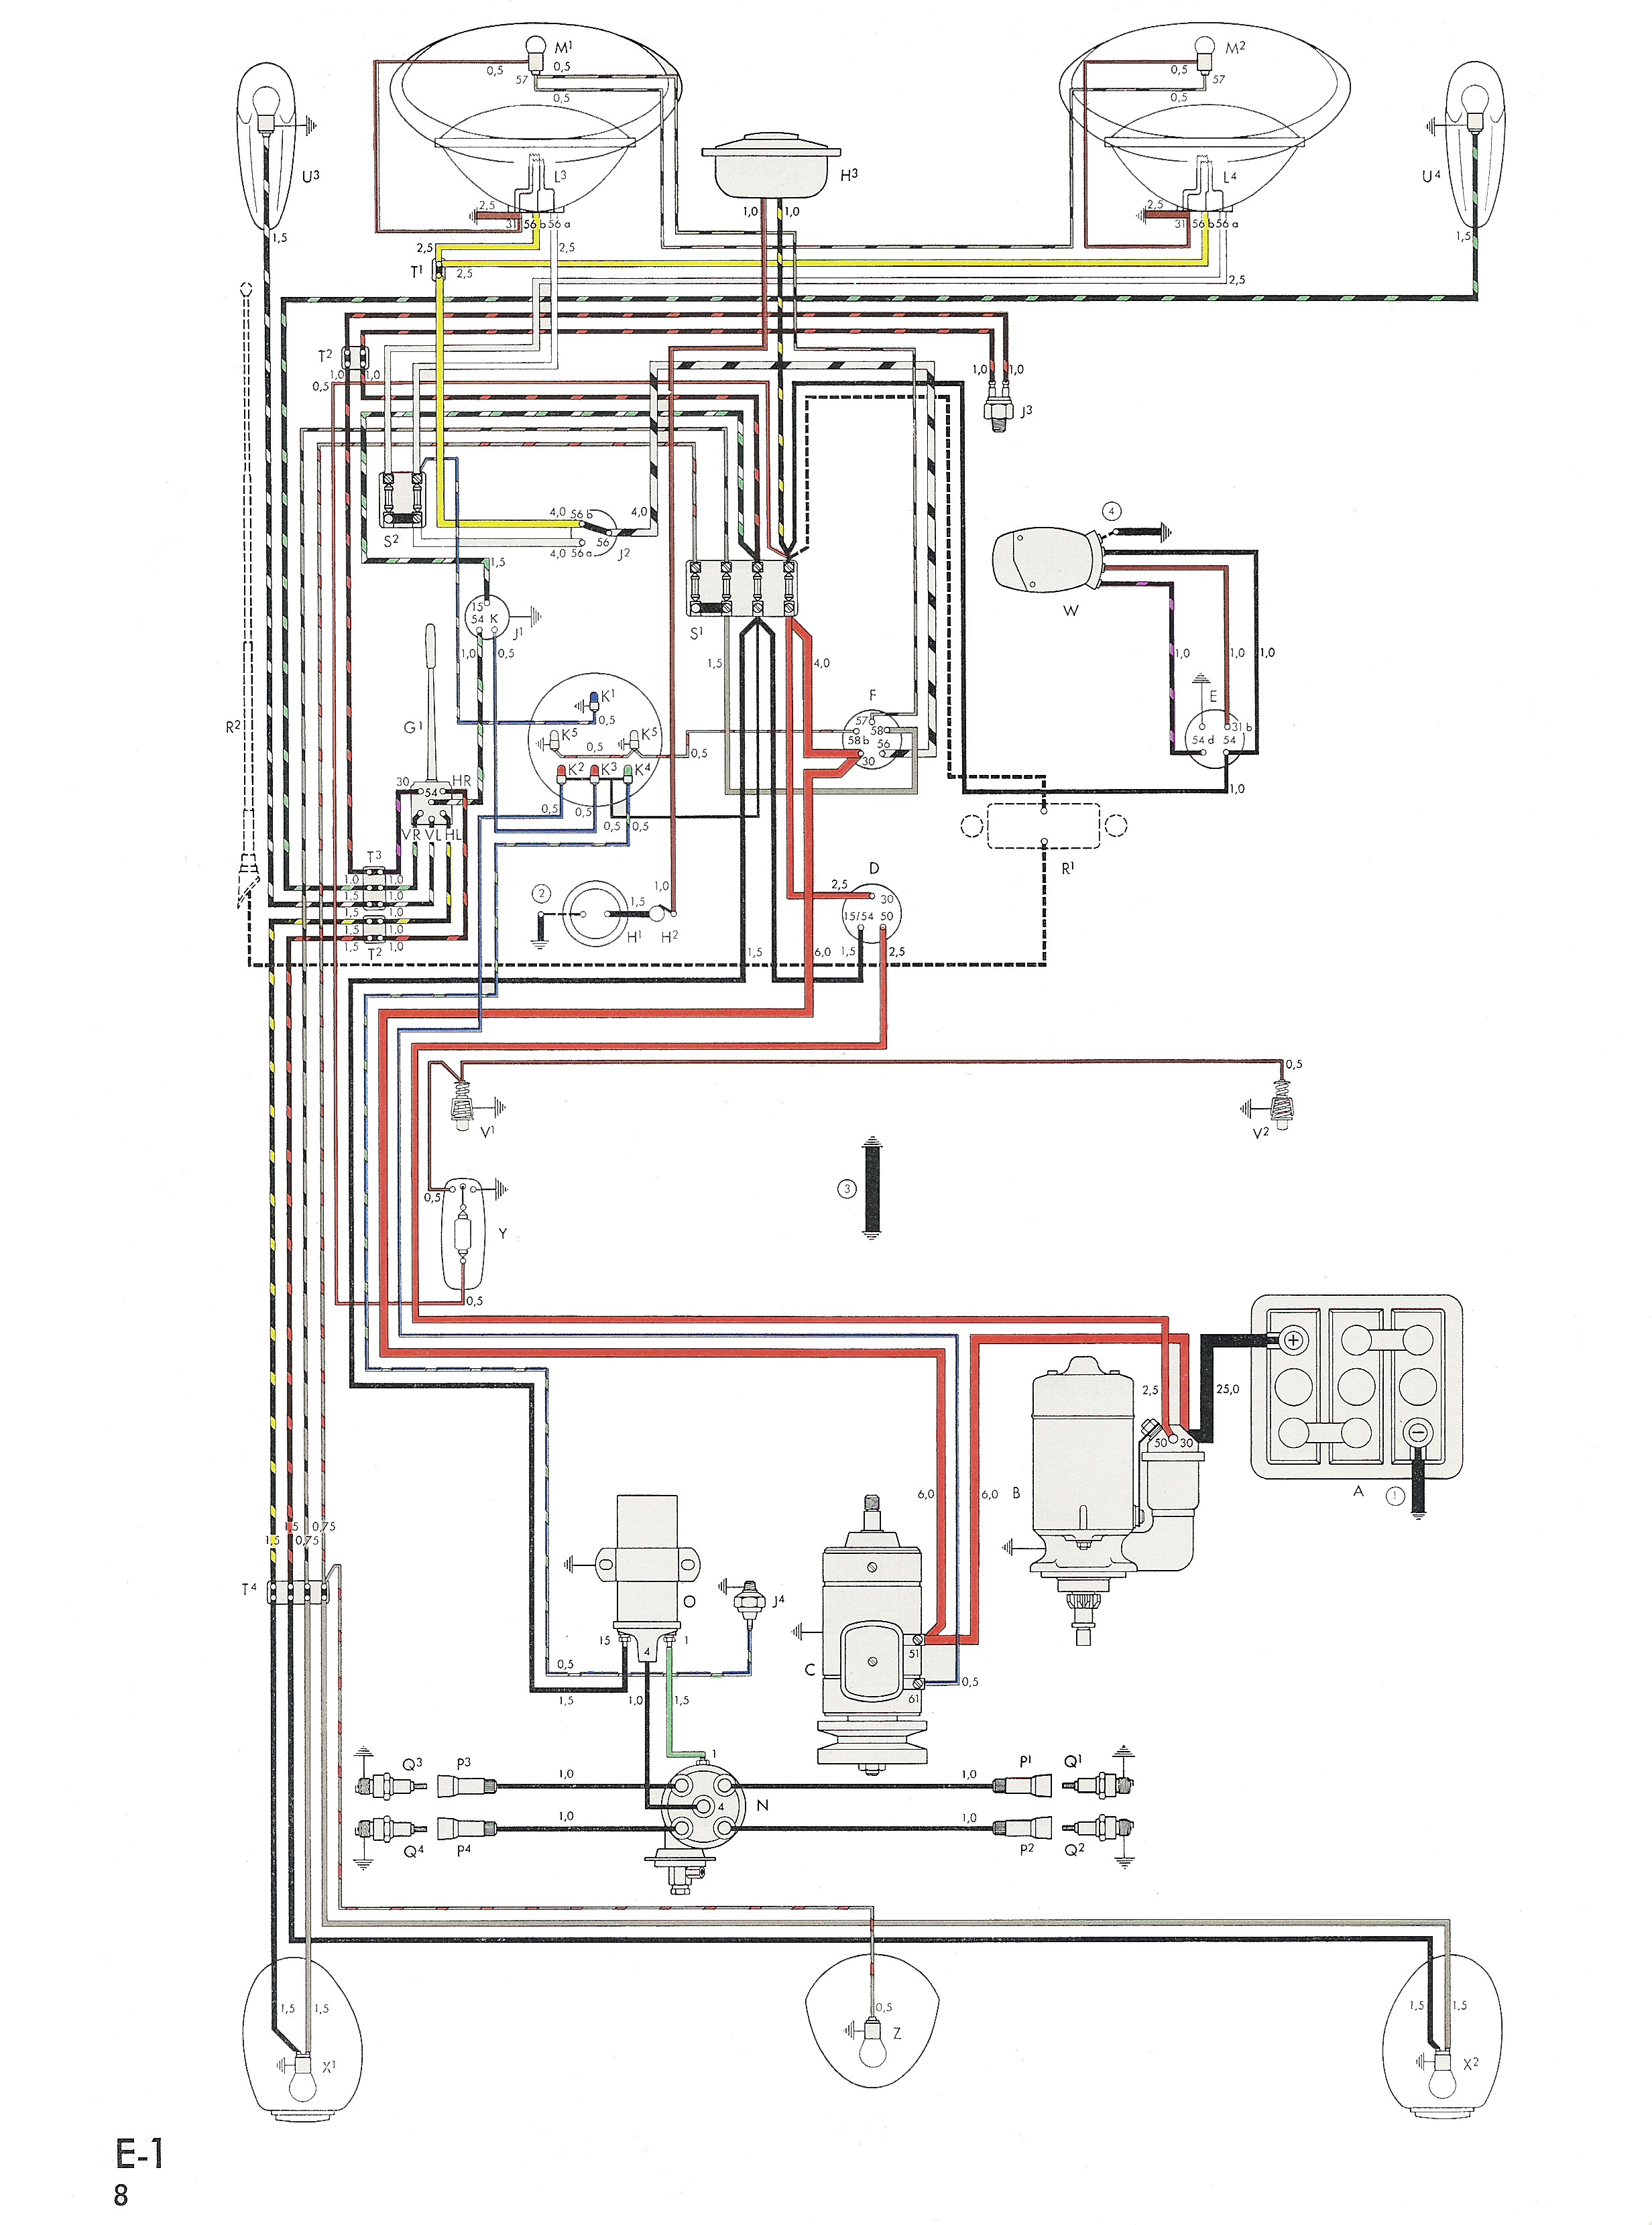 1970 Vw Beetle Engine Diagram Wiring Diagram In Addition Vw Beetle Voltage Regulator Wiring Of 1970 Vw Beetle Engine Diagram